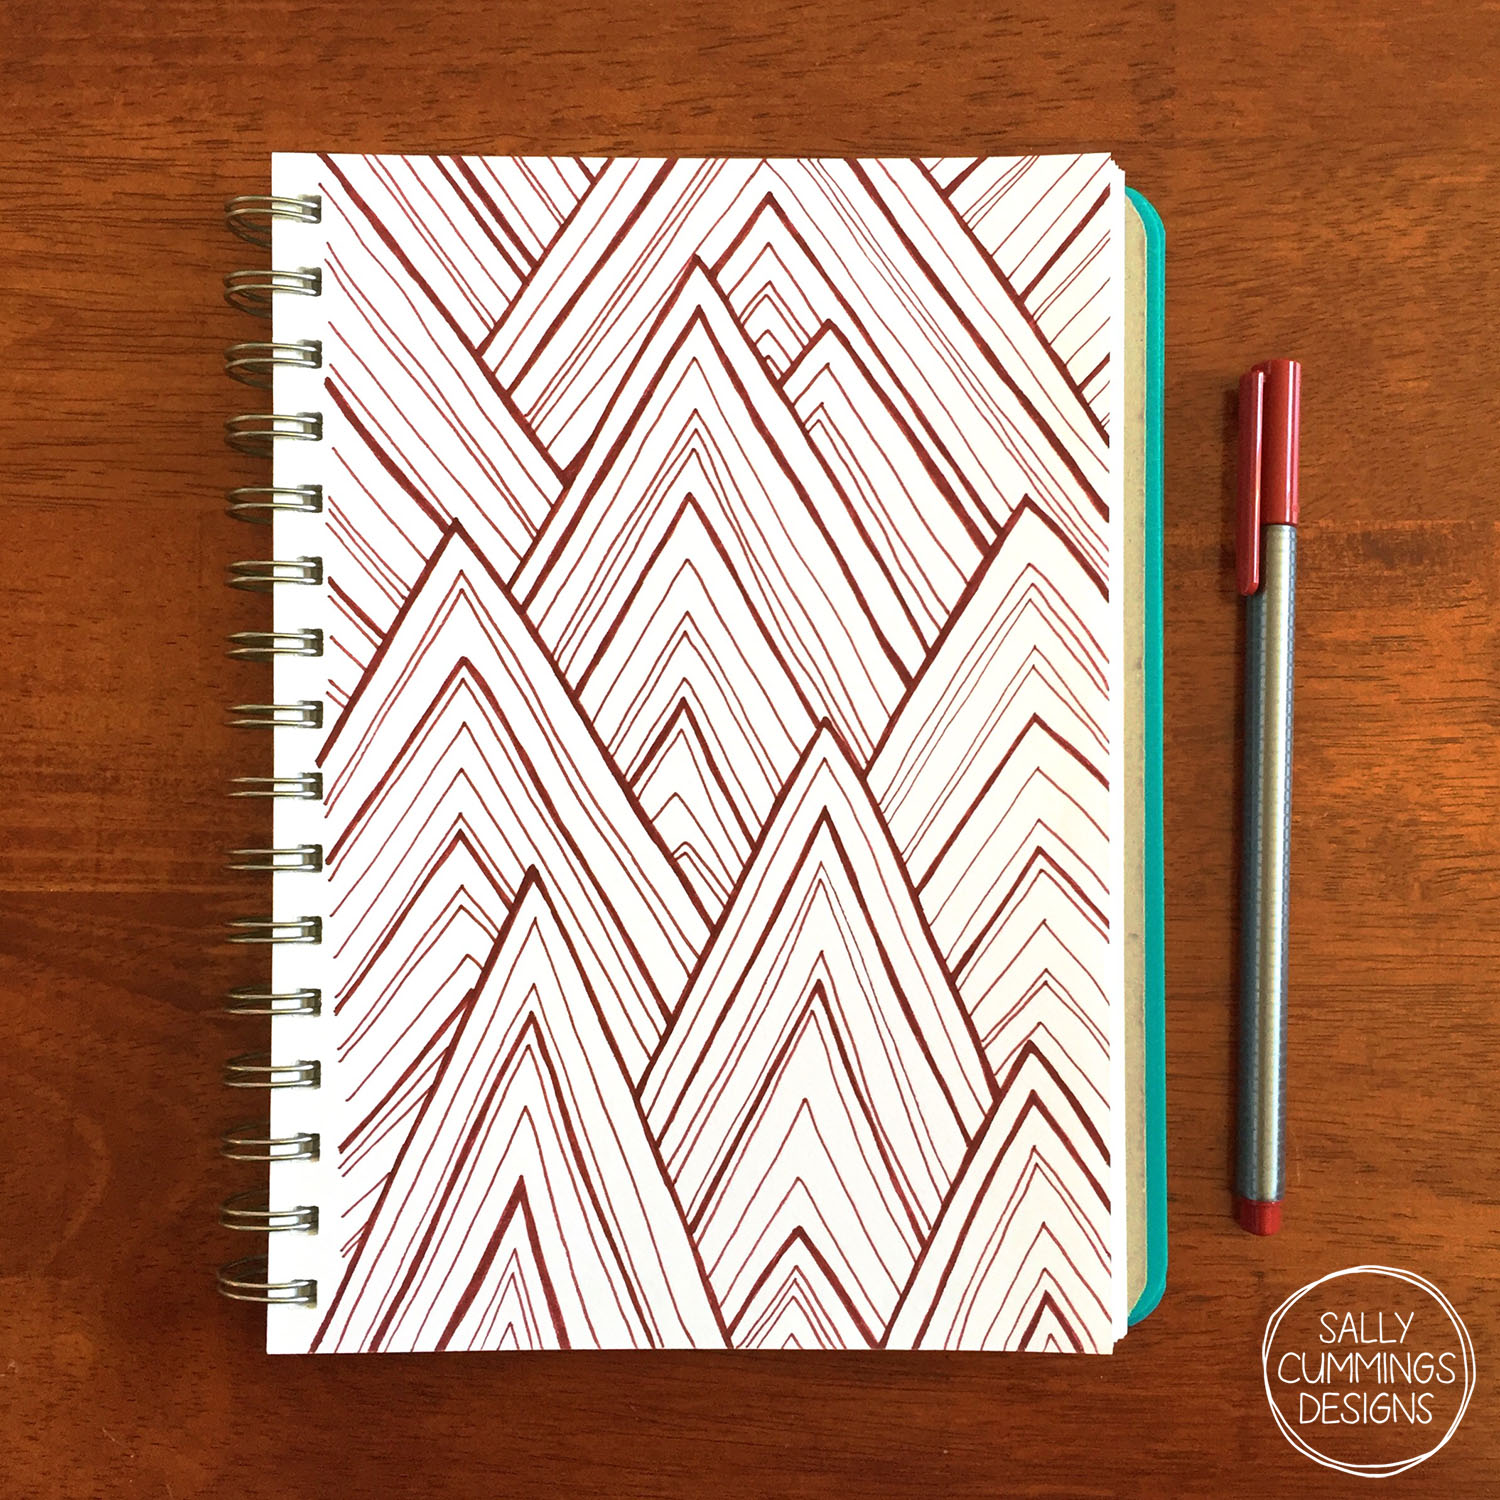 Sally Cummings Designs - Stripe Mountains sketchbook page